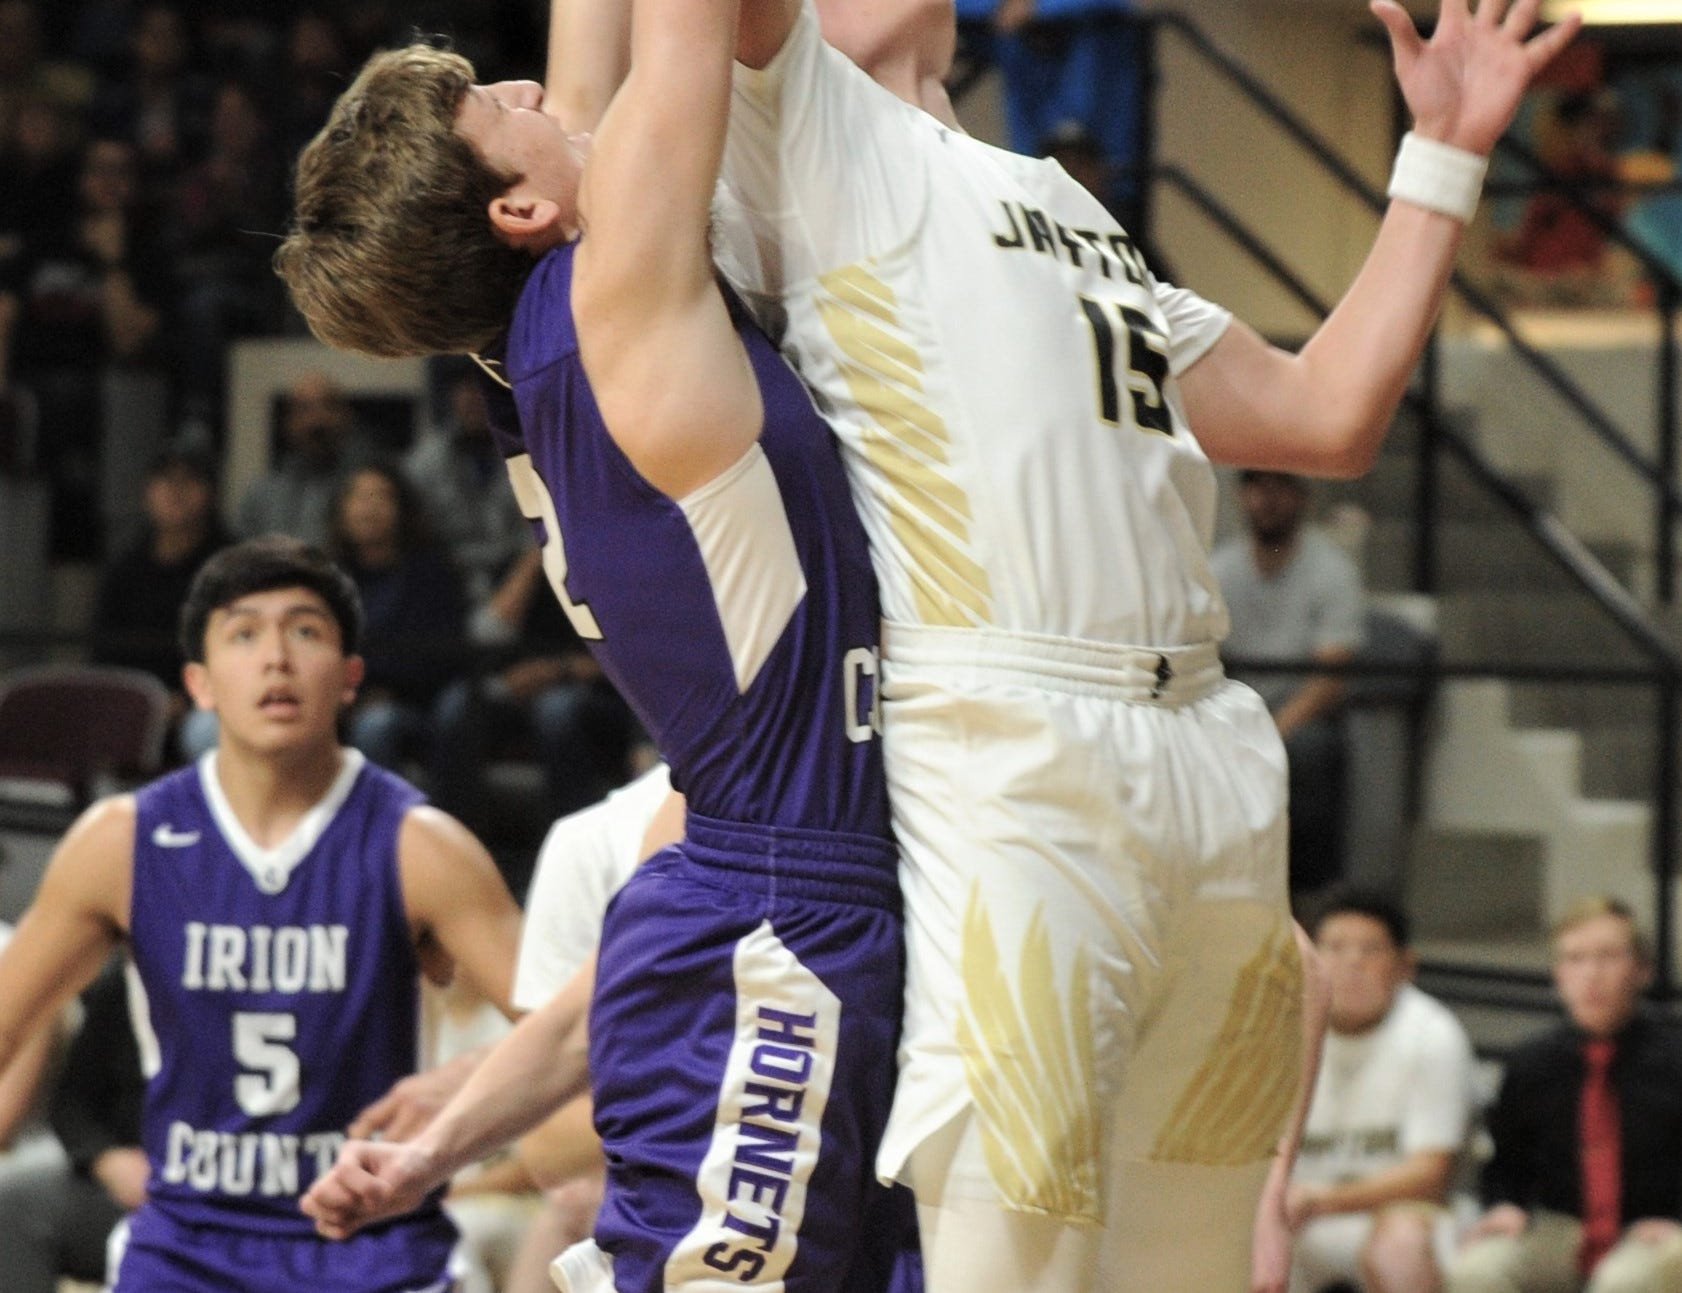 Jayton's Pecos Smith, right, battles an Irion County player for a rebound. The Jaybirds beat Irion County 47-32 in the Region II-1A championship game Saturday, March 2, 2019, at Abilene Christian's Moody Coliseum.